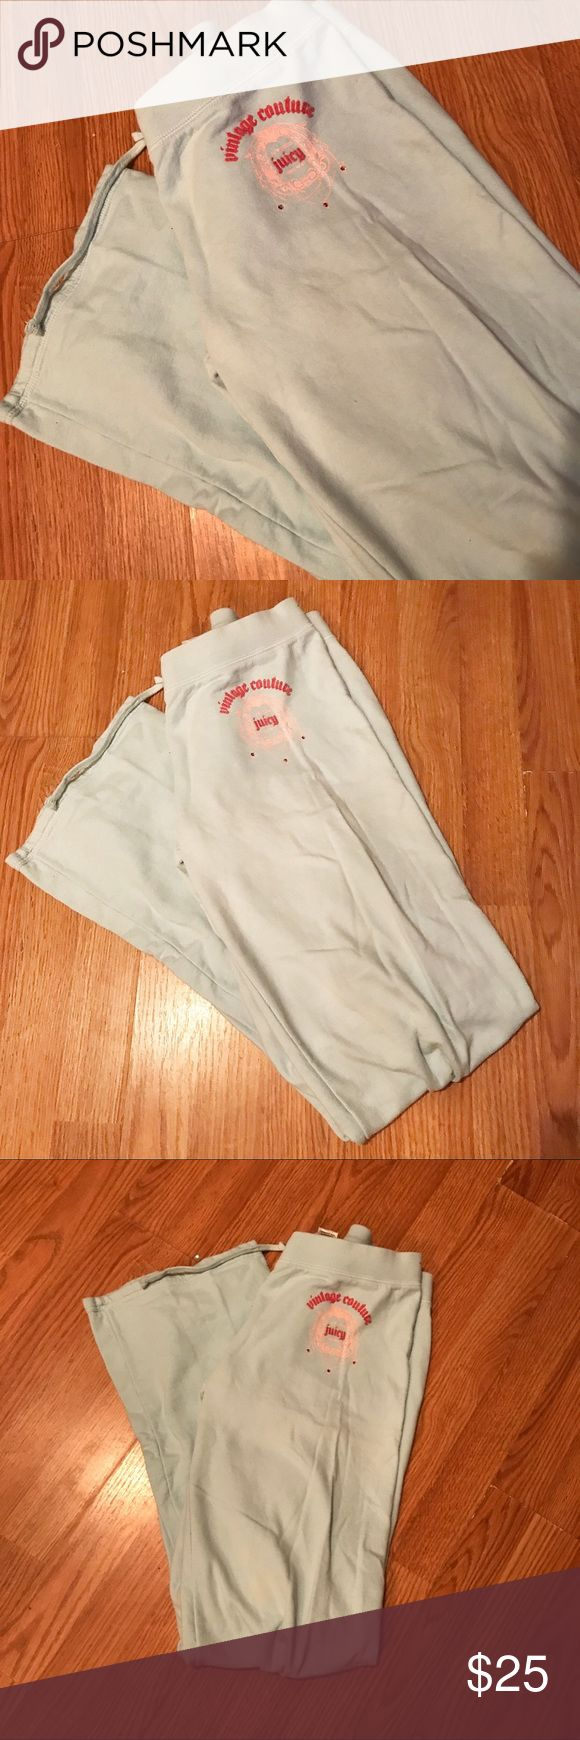 vtg   baby blue   juicy couture wide leg sweatpant Vintage life baby blue JUICY COUTURE wide leg sweatpants. Size medium. Excellent condition; no flaws or defects at all. Only worn a few times and just been kept in my closet. Very comfortable, warm.   #juicy #couture #vintage #vtg #sweatpants #bling #christmas #shop #sale #gift #present Juicy Couture Pants Track Pants & Joggers